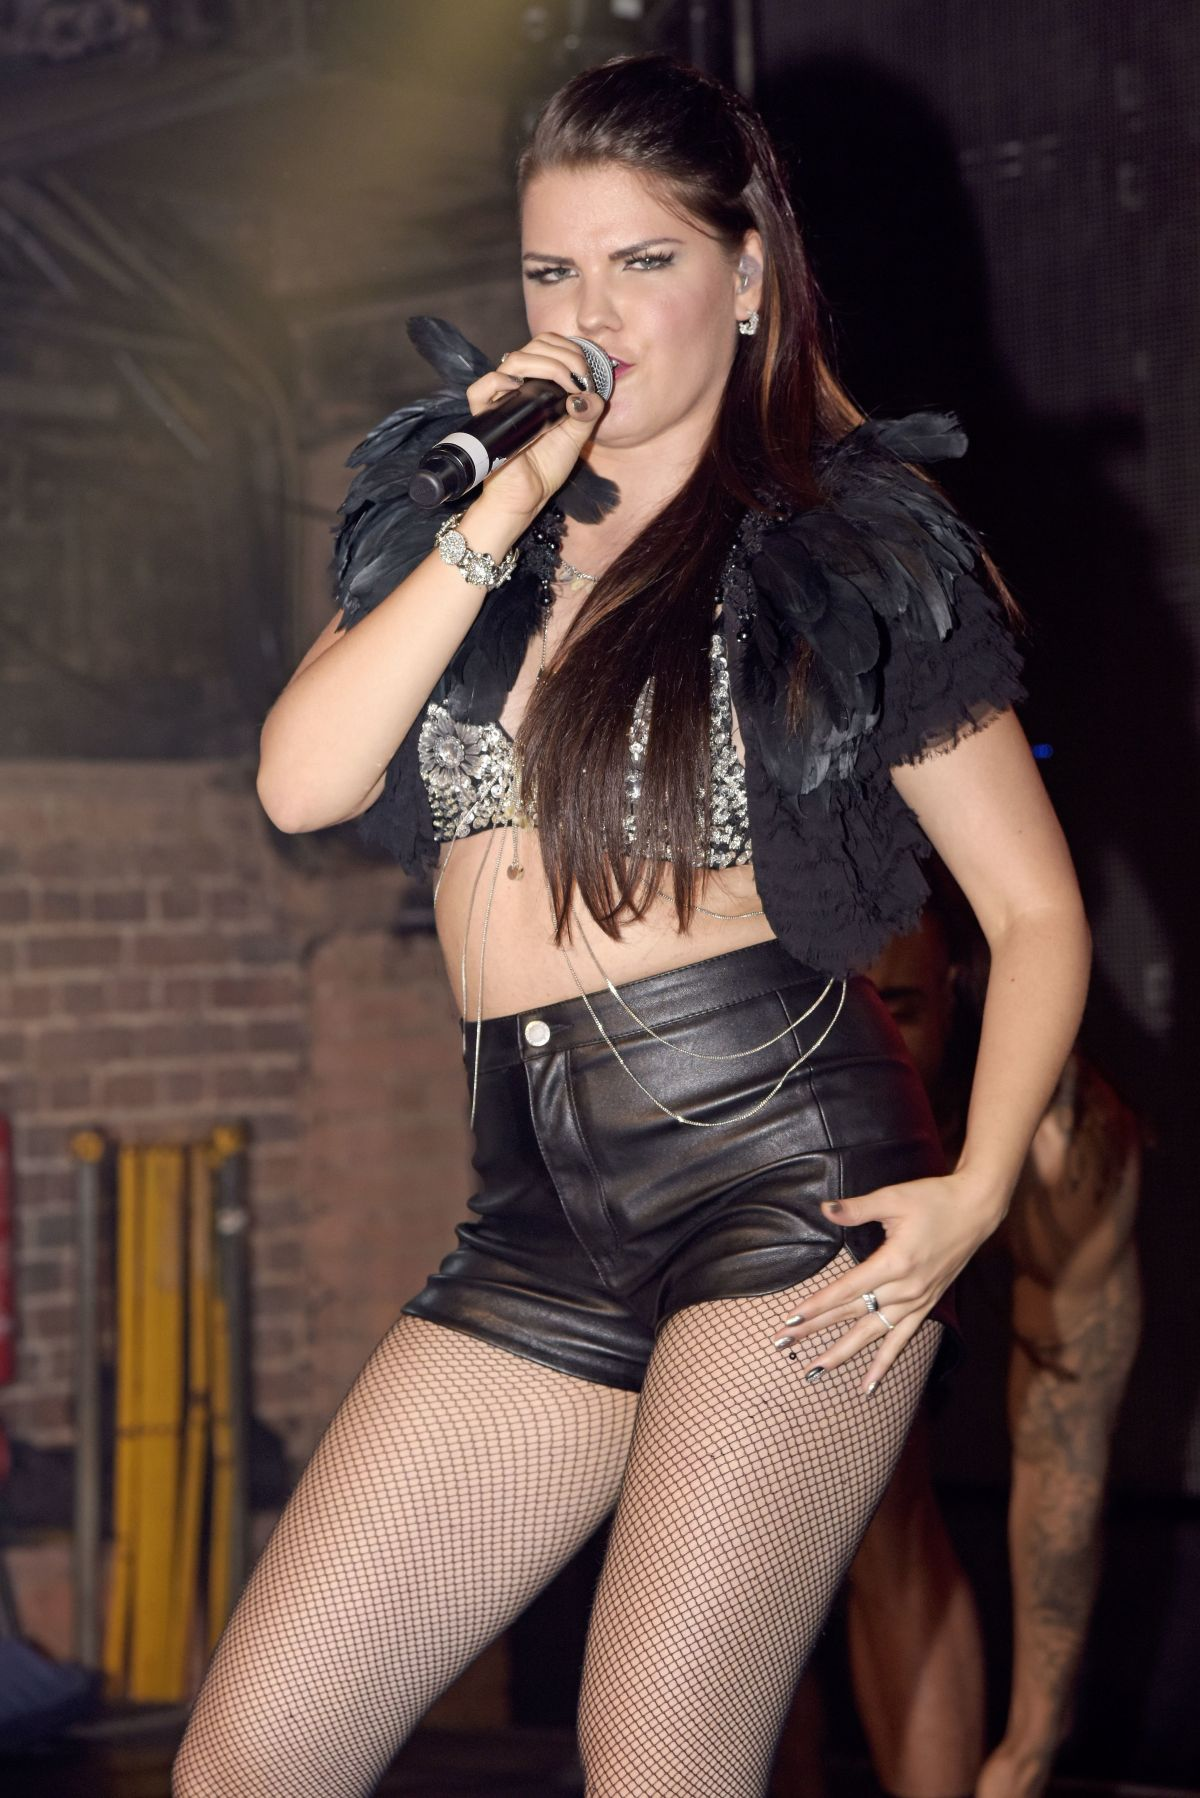 SAARA AALTO Performs at G-A-Y Club in London 01/07/2017